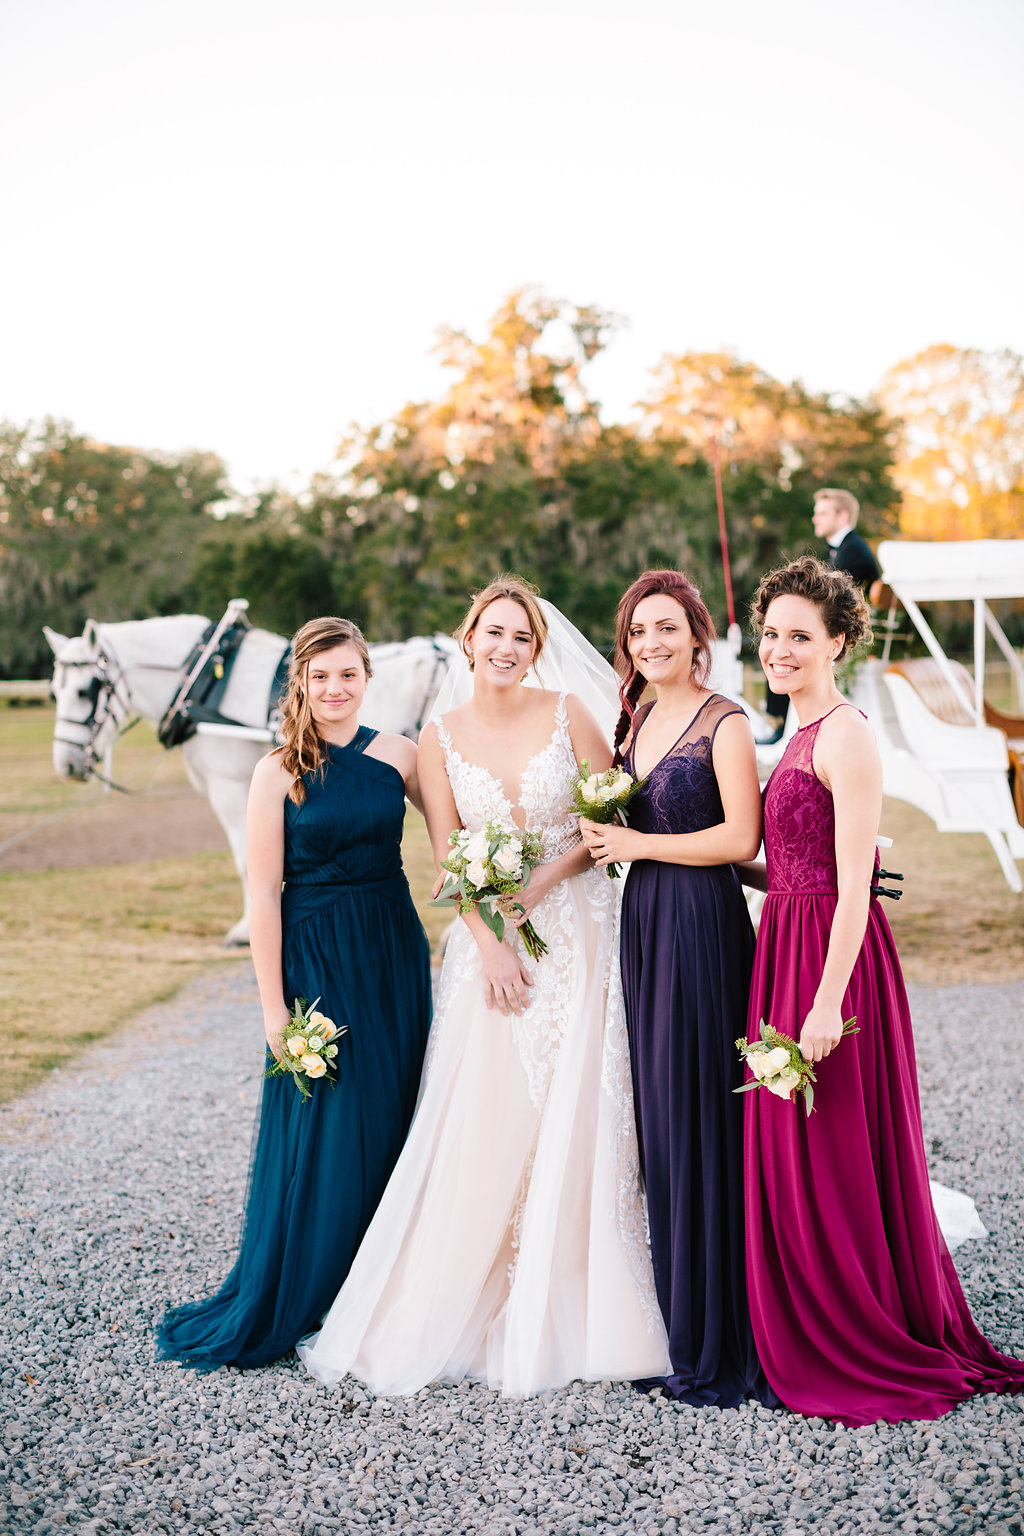 Bridal Party at Sugah Cain Plantation  //  Charleston wedding vendor - Verita Bridal Boutique  Bride and her maids at Sugah Cain Plantation in front of white horse and Carriage  //  on A Lowocountry Wedding Magazine & Blog